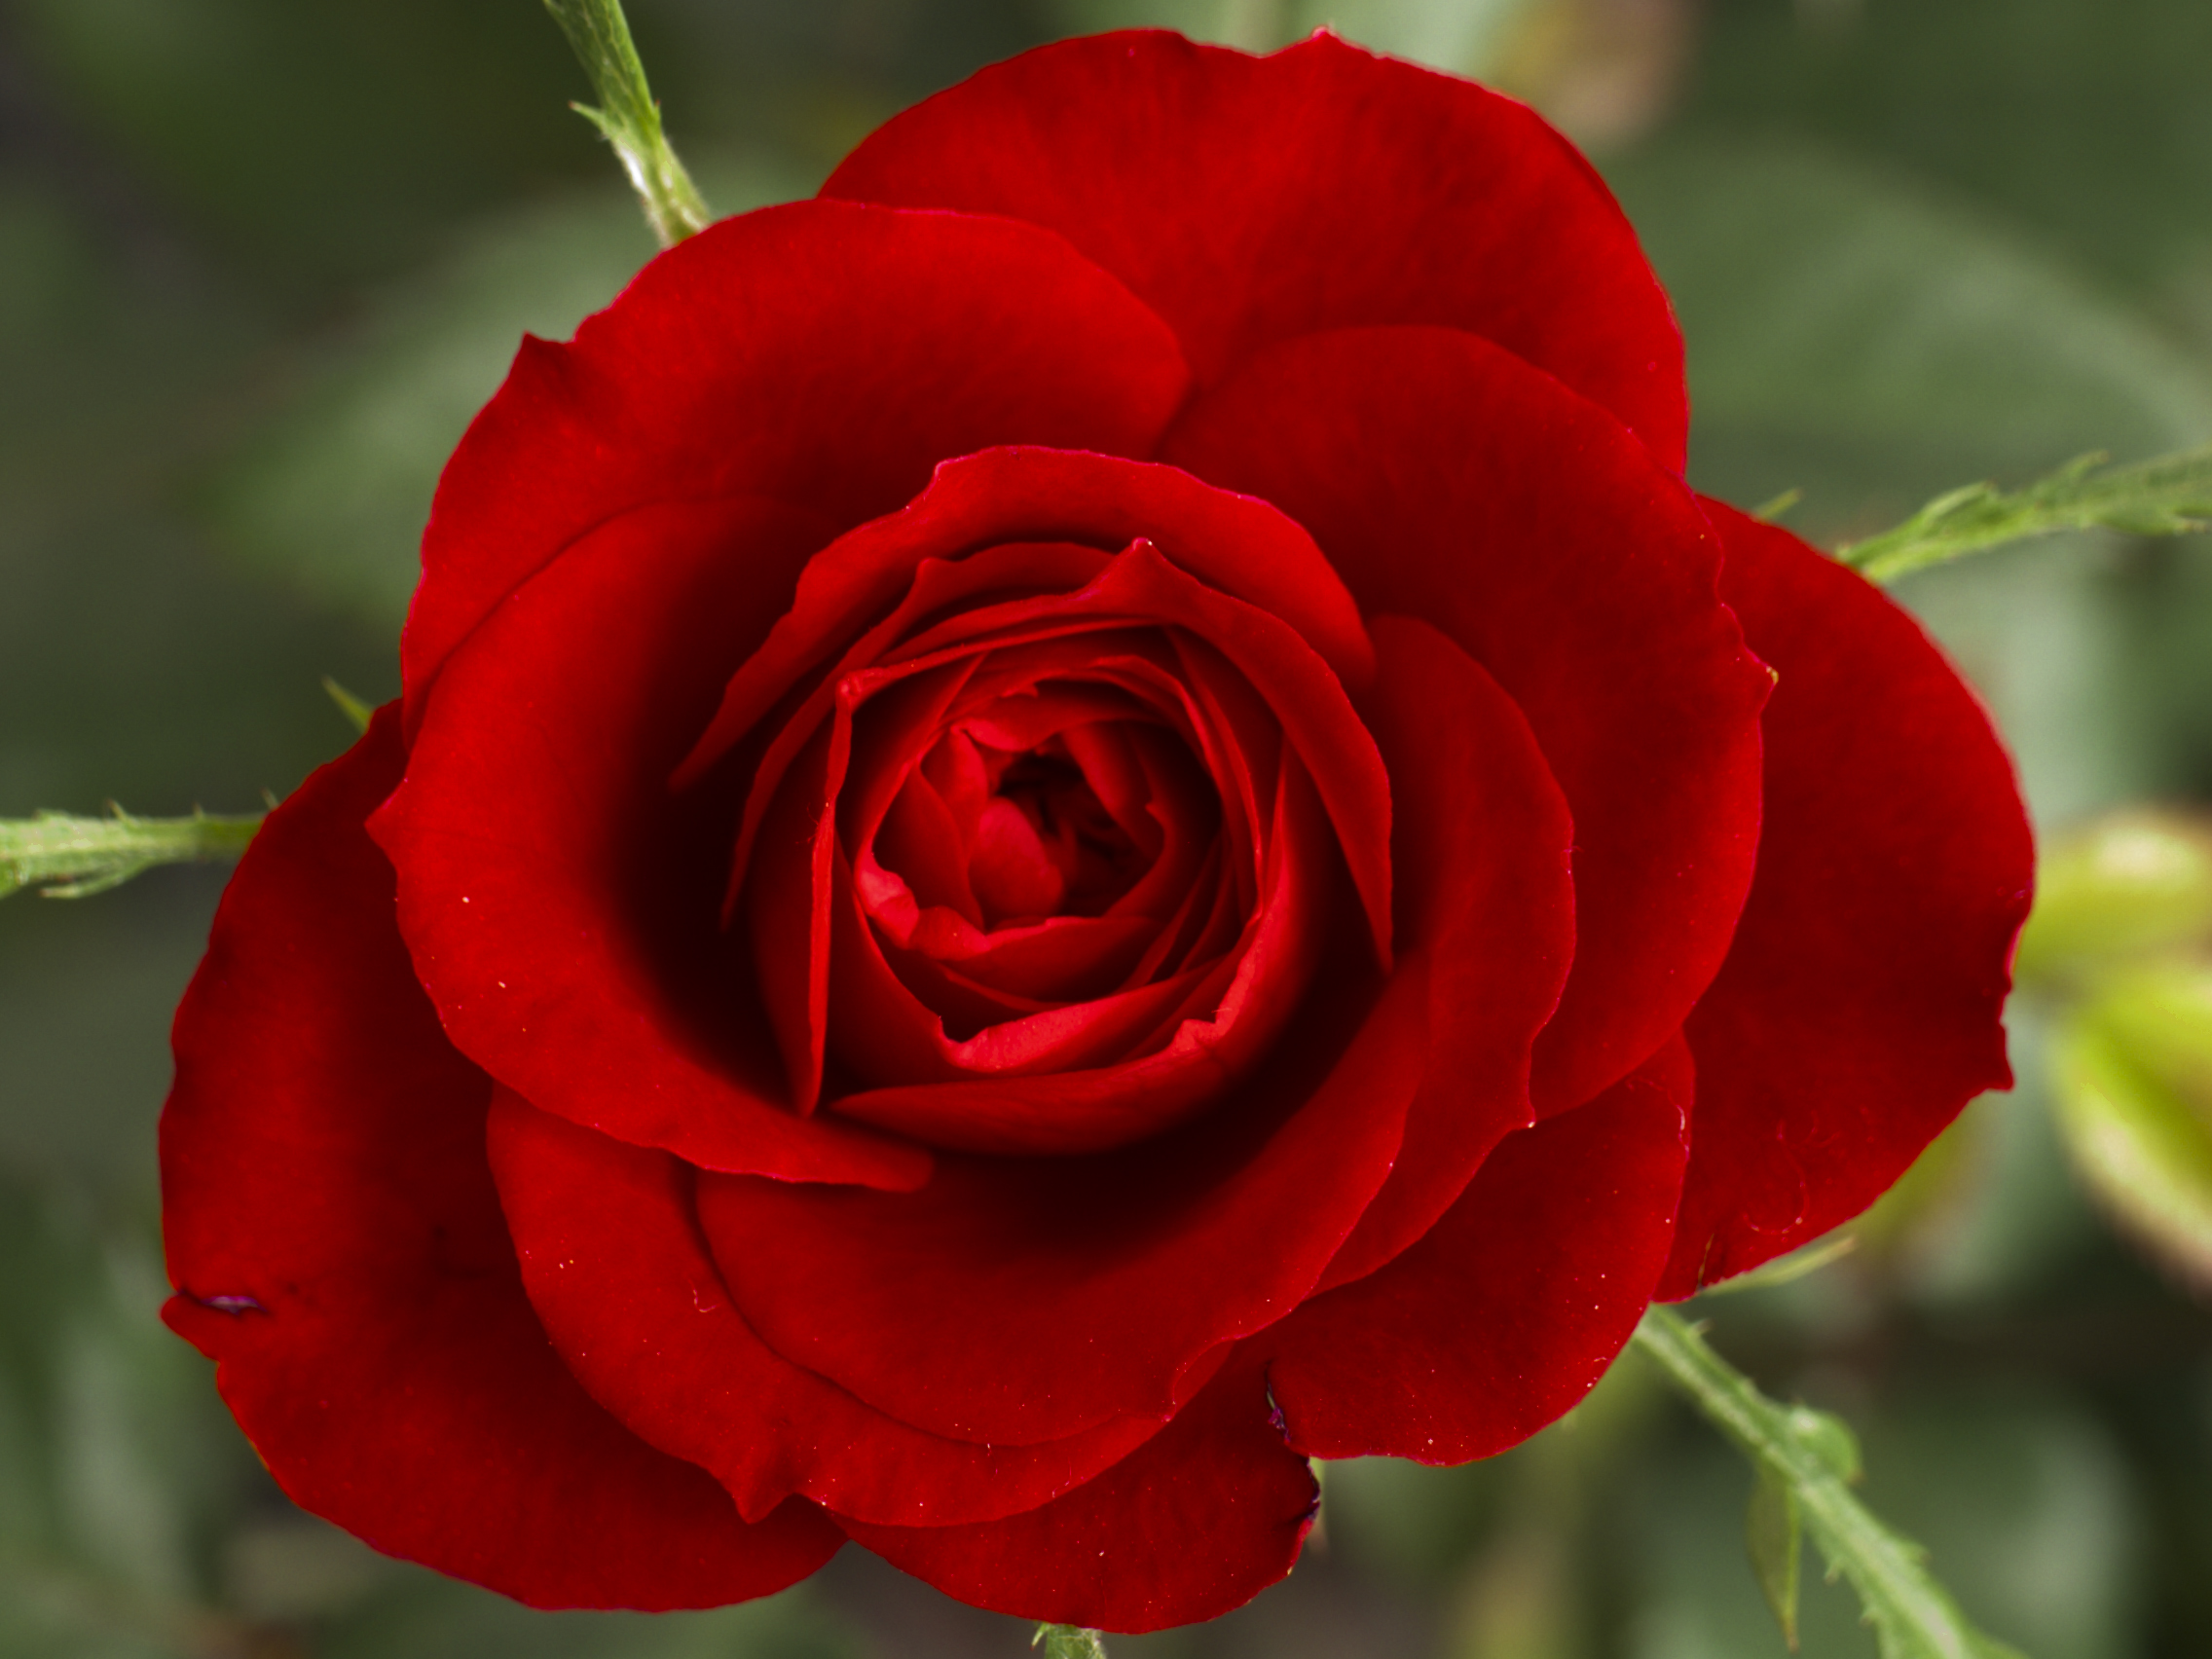 File:Small Red Rose.JPG - Wikimedia Commonsrose